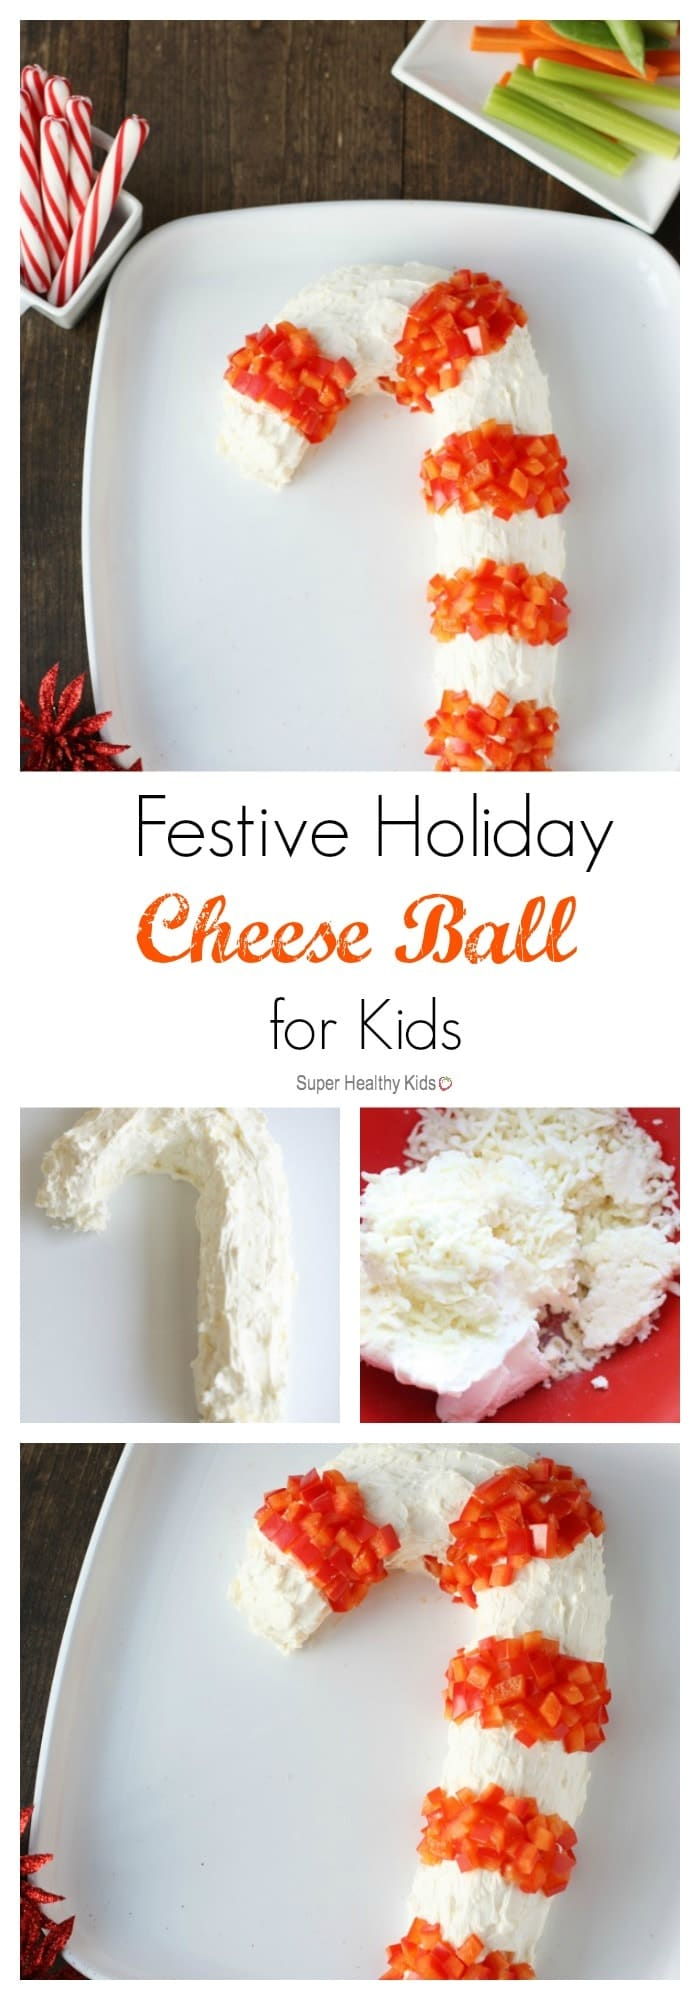 Festive Holiday Cheese Ball for Kids. Here's a cheese appetizer with a festive twist! https://www.superhealthykids.com/festive-holiday-cheese-ball-kids/